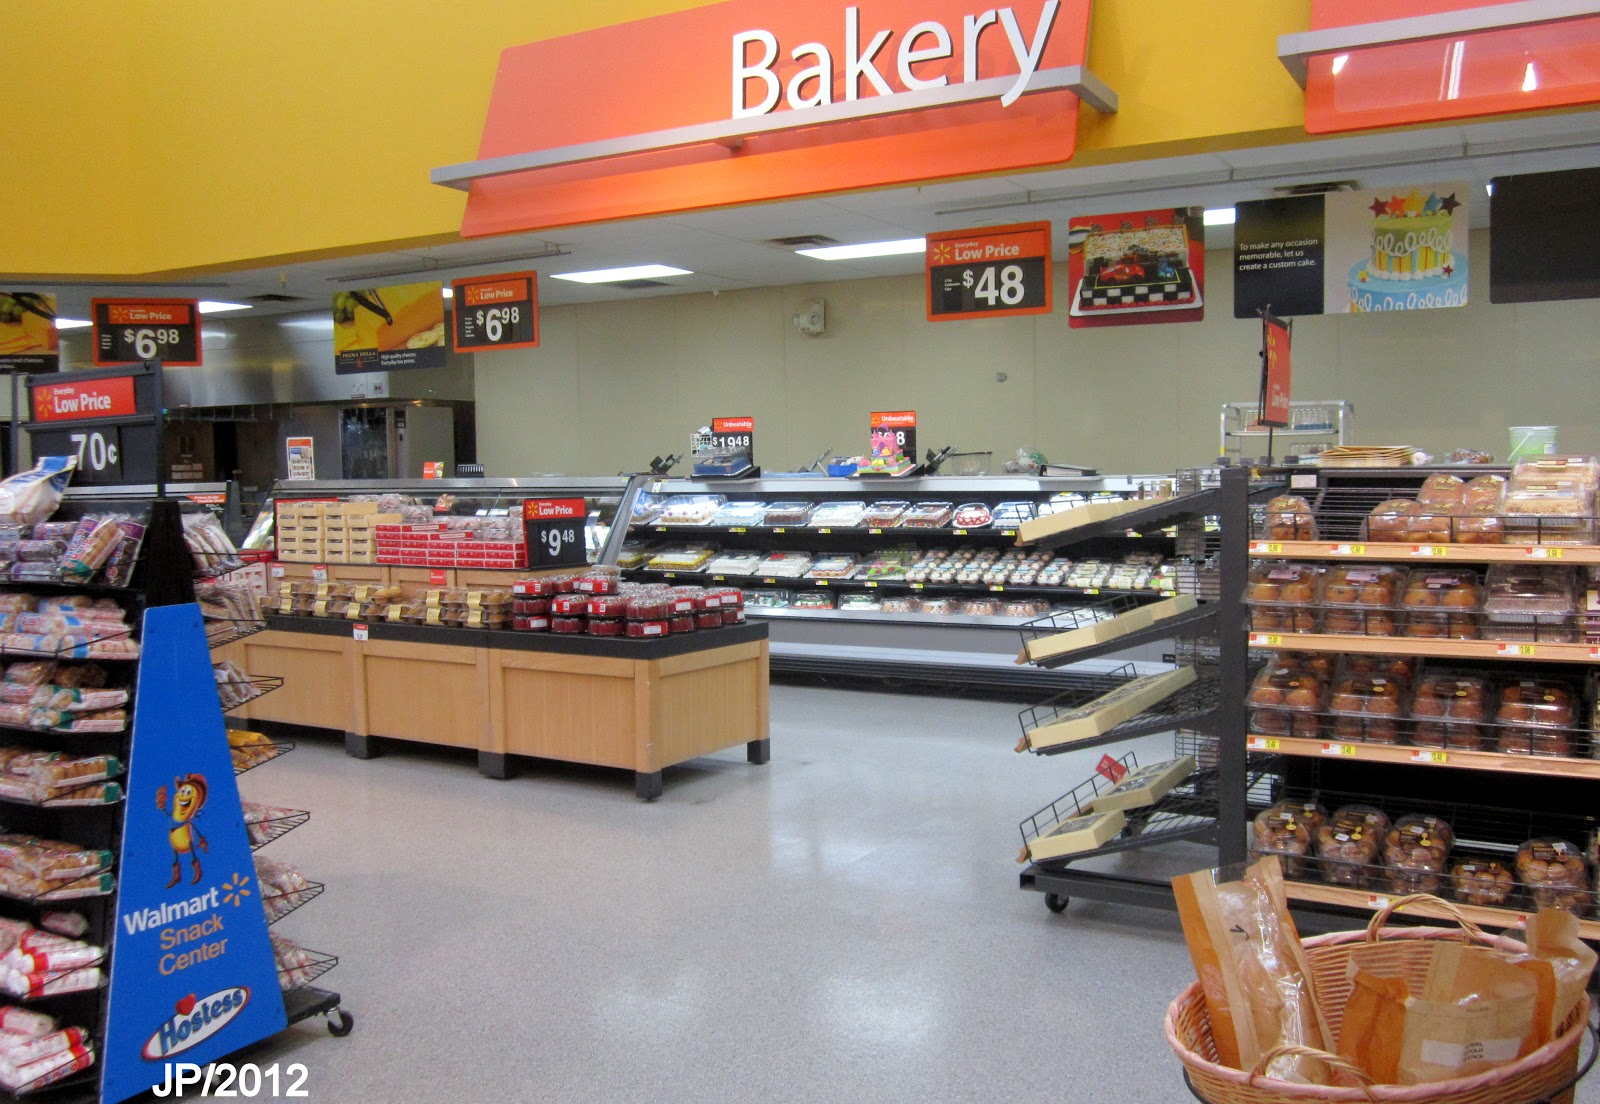 WALMART BAKERY DEPARTMENT, WalMart Super Center Bakery Wal Mart Store